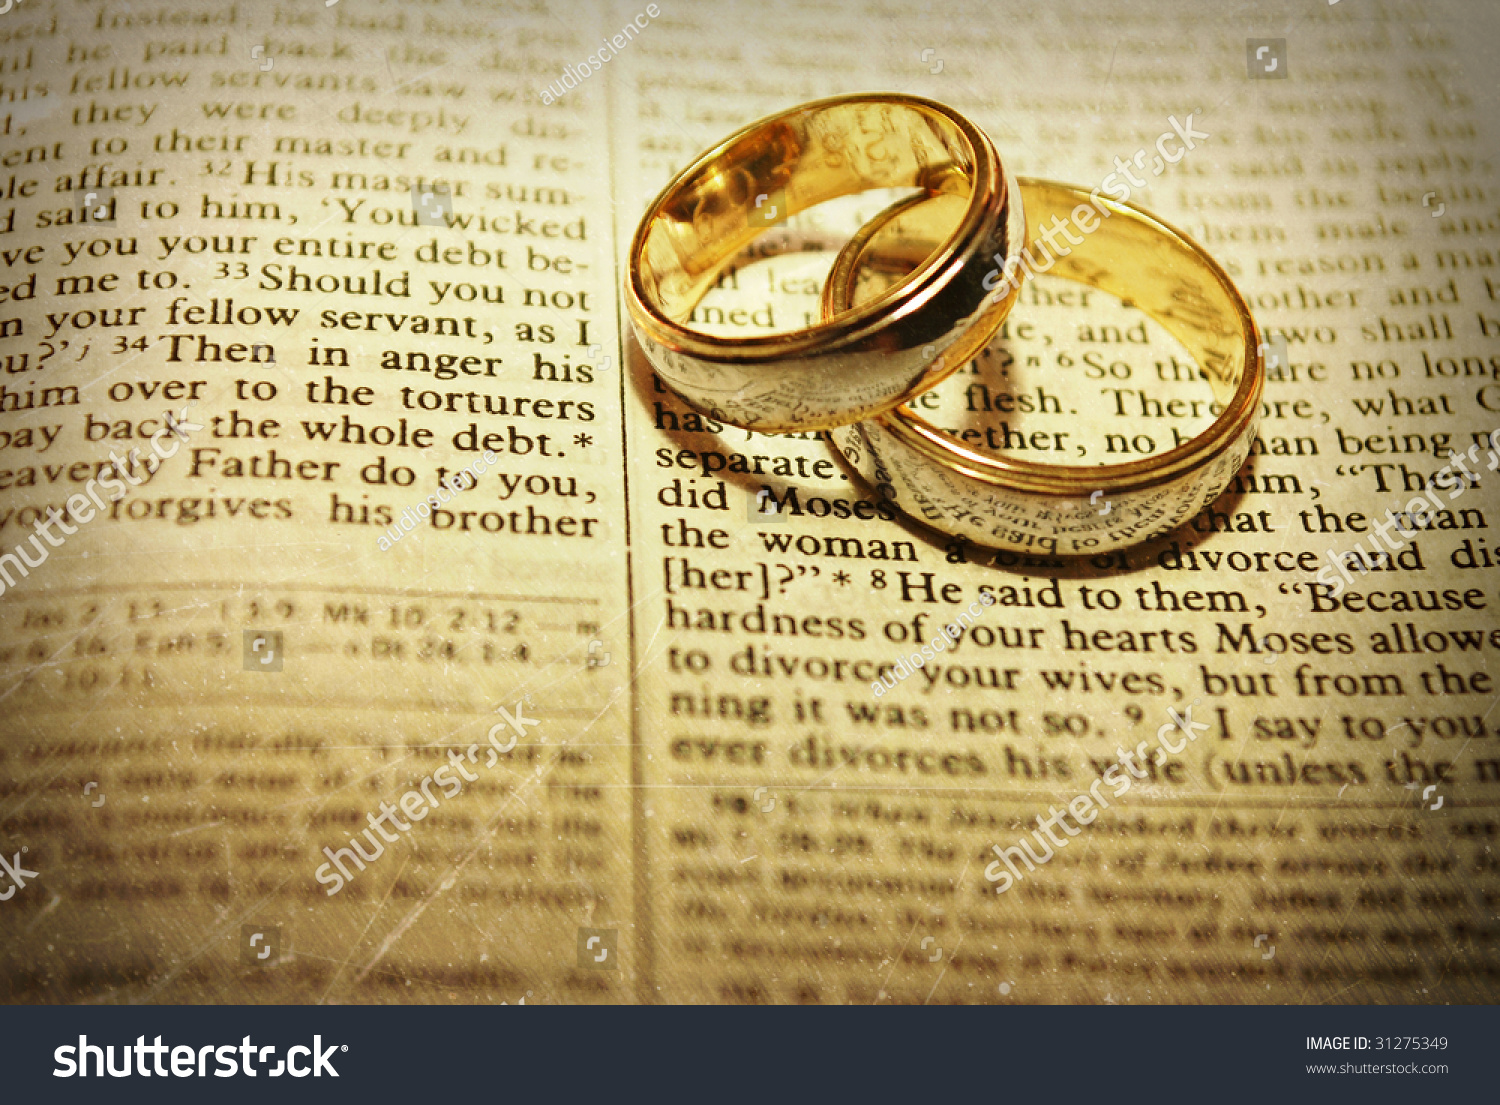 Ideas for Engraving Wedding Rings  LoveToKnow